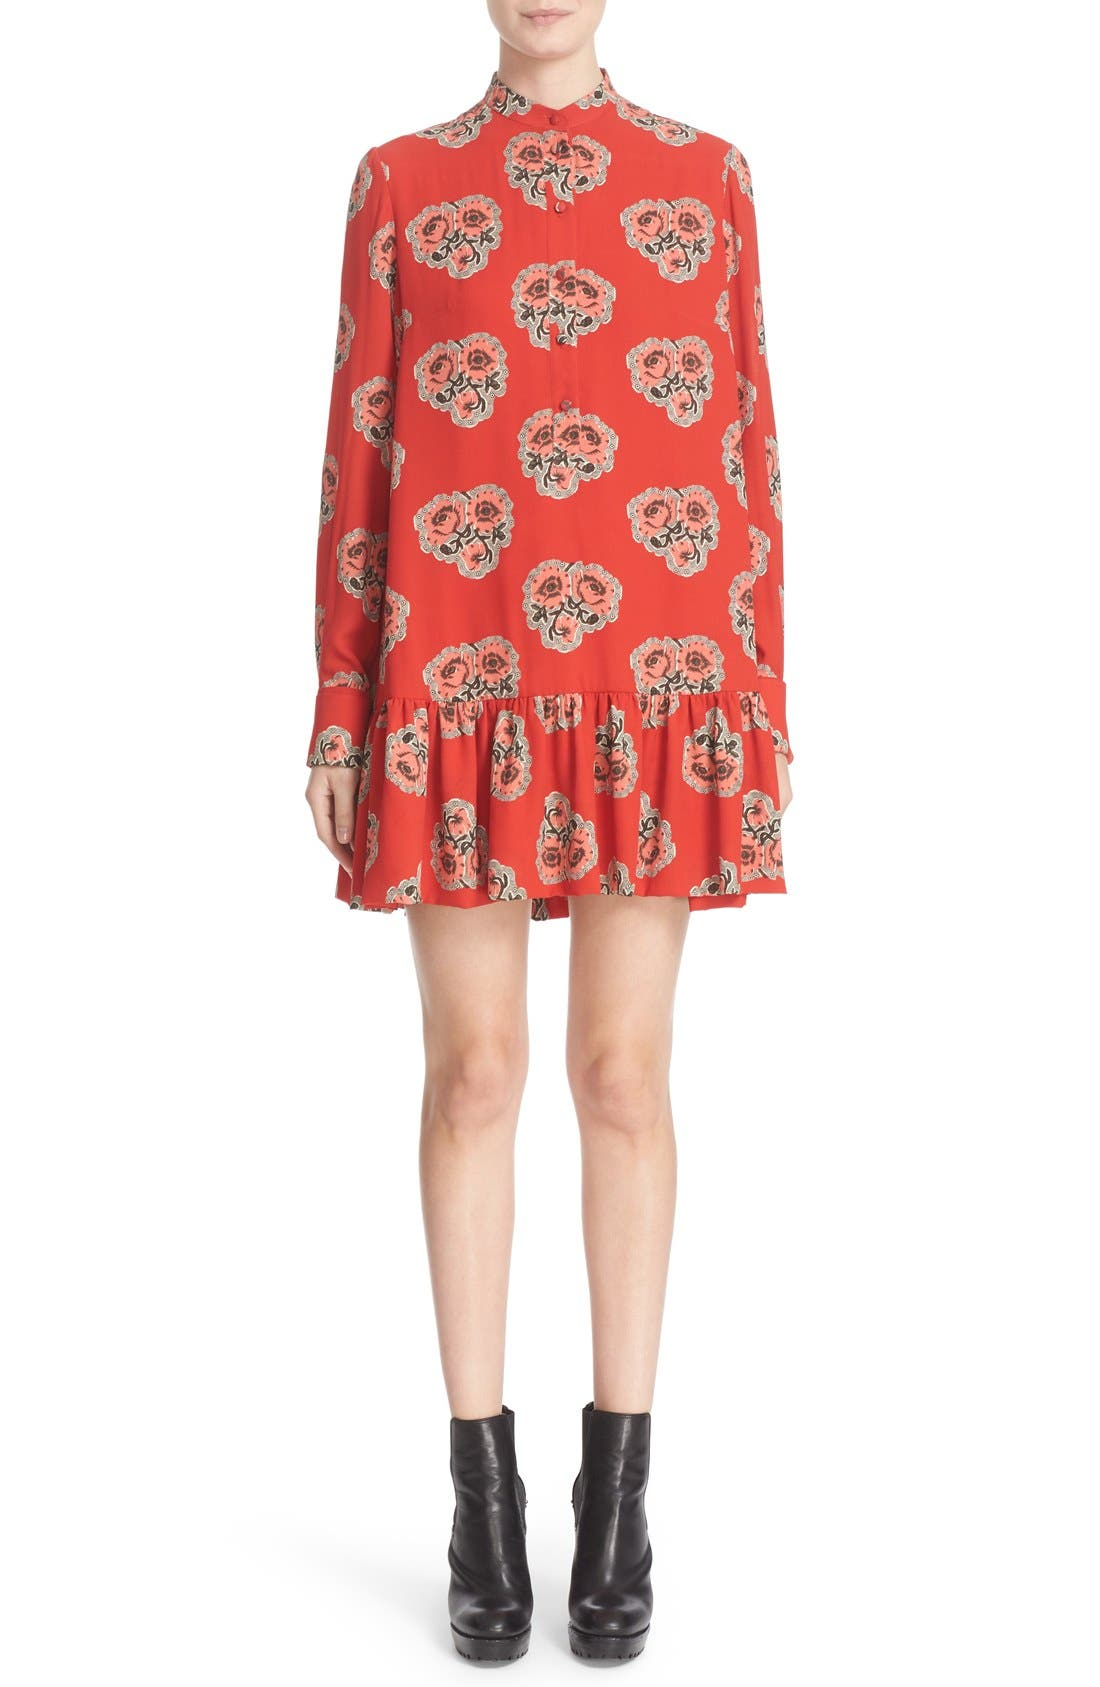 ALEXANDER MCQUEEN Poppy Print Ruffle Hem Georgette Dress